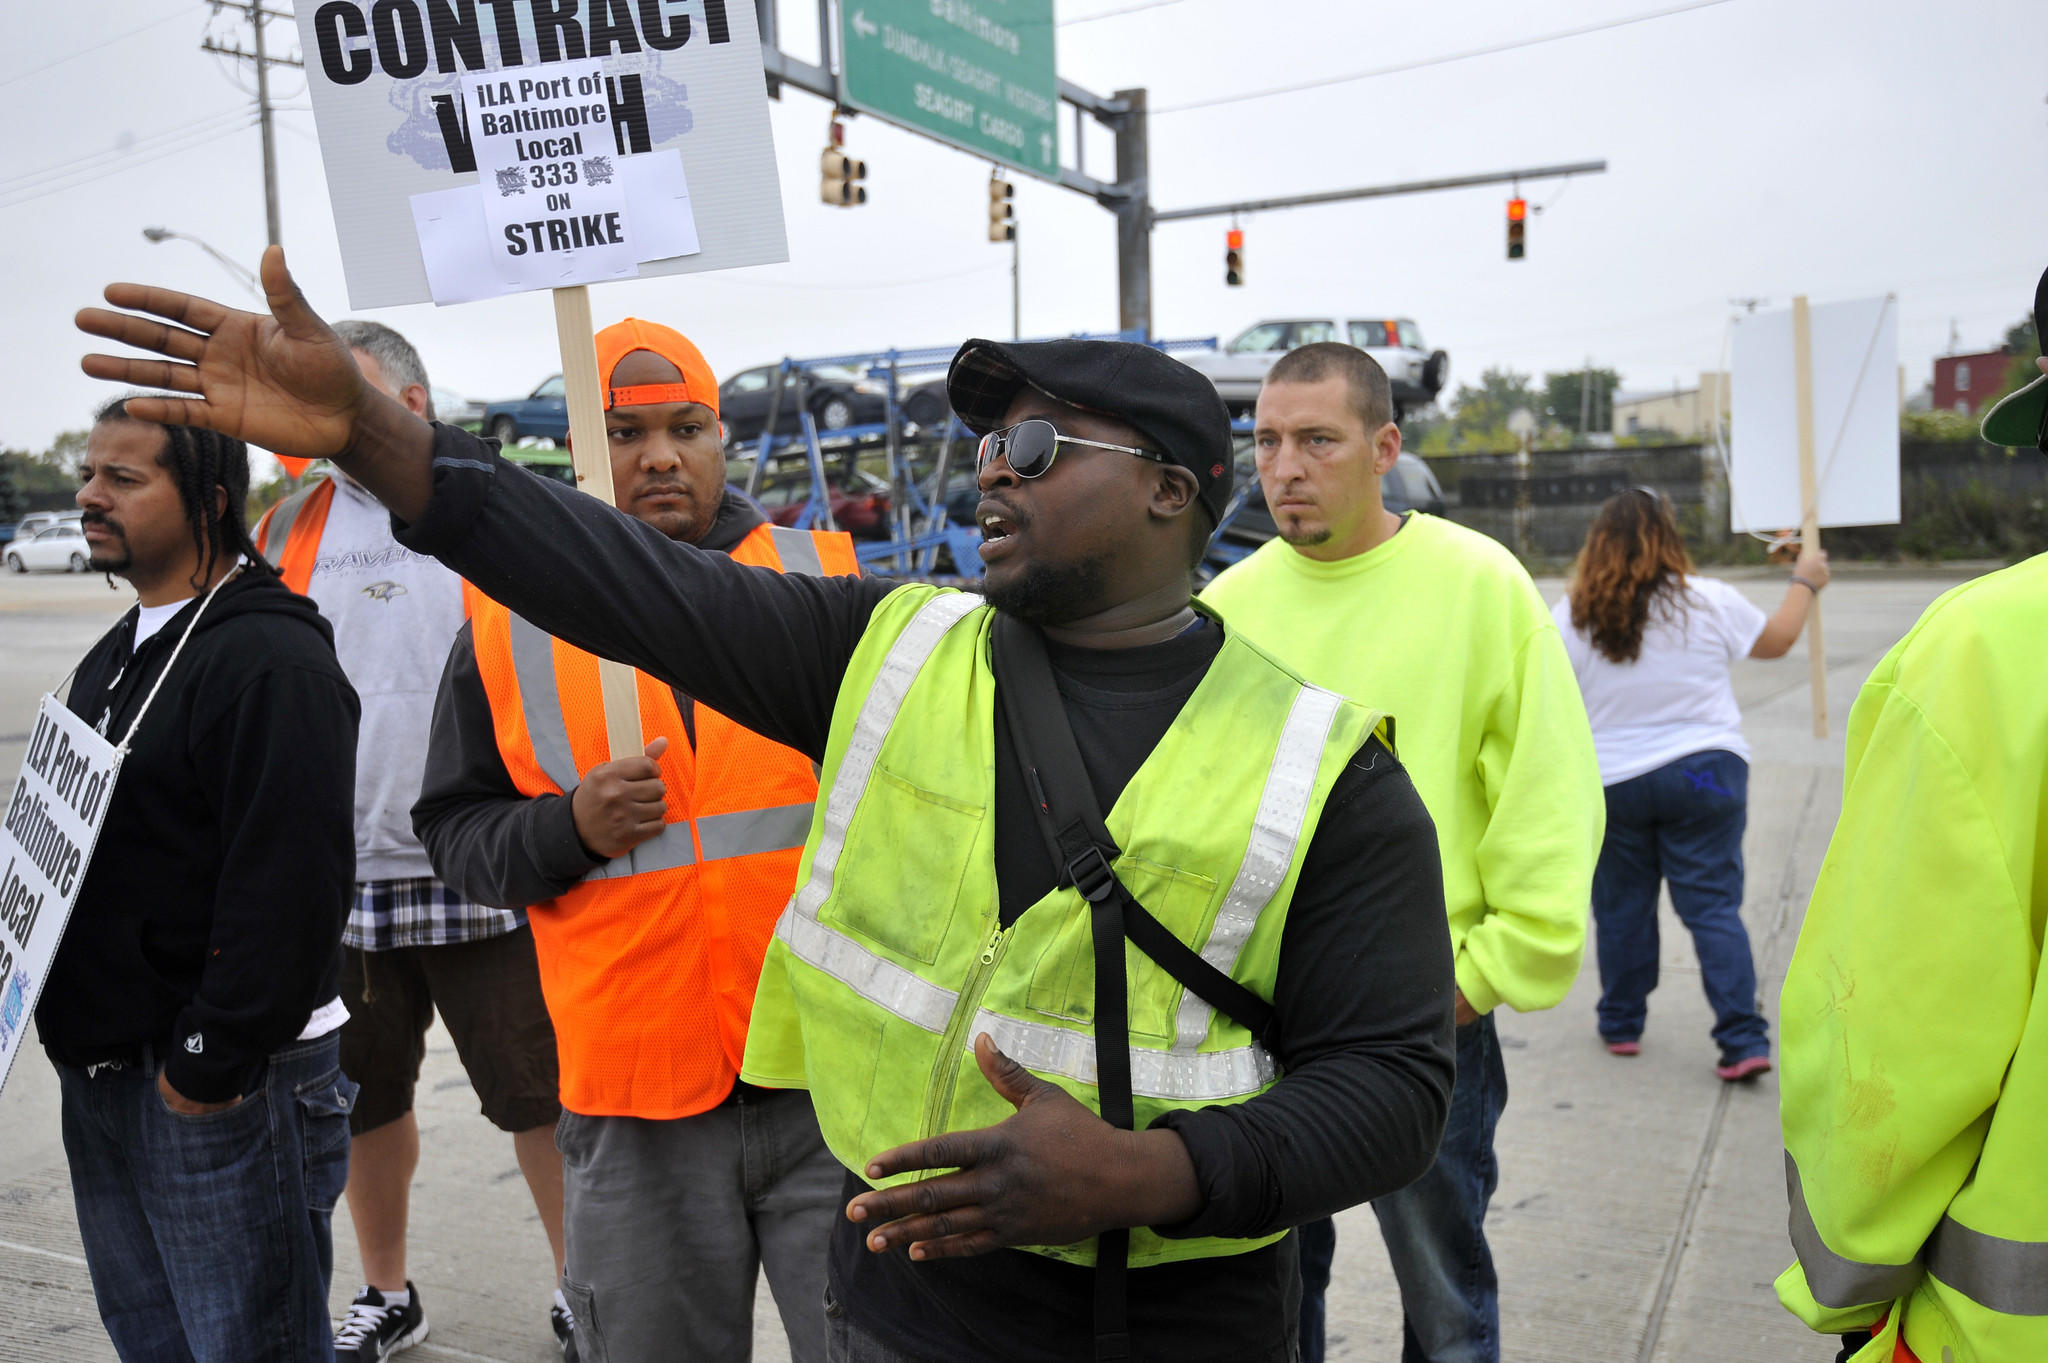 Omahie Mitchell takes part in the brief longshoremen strike at the Port of Baltimore in October.